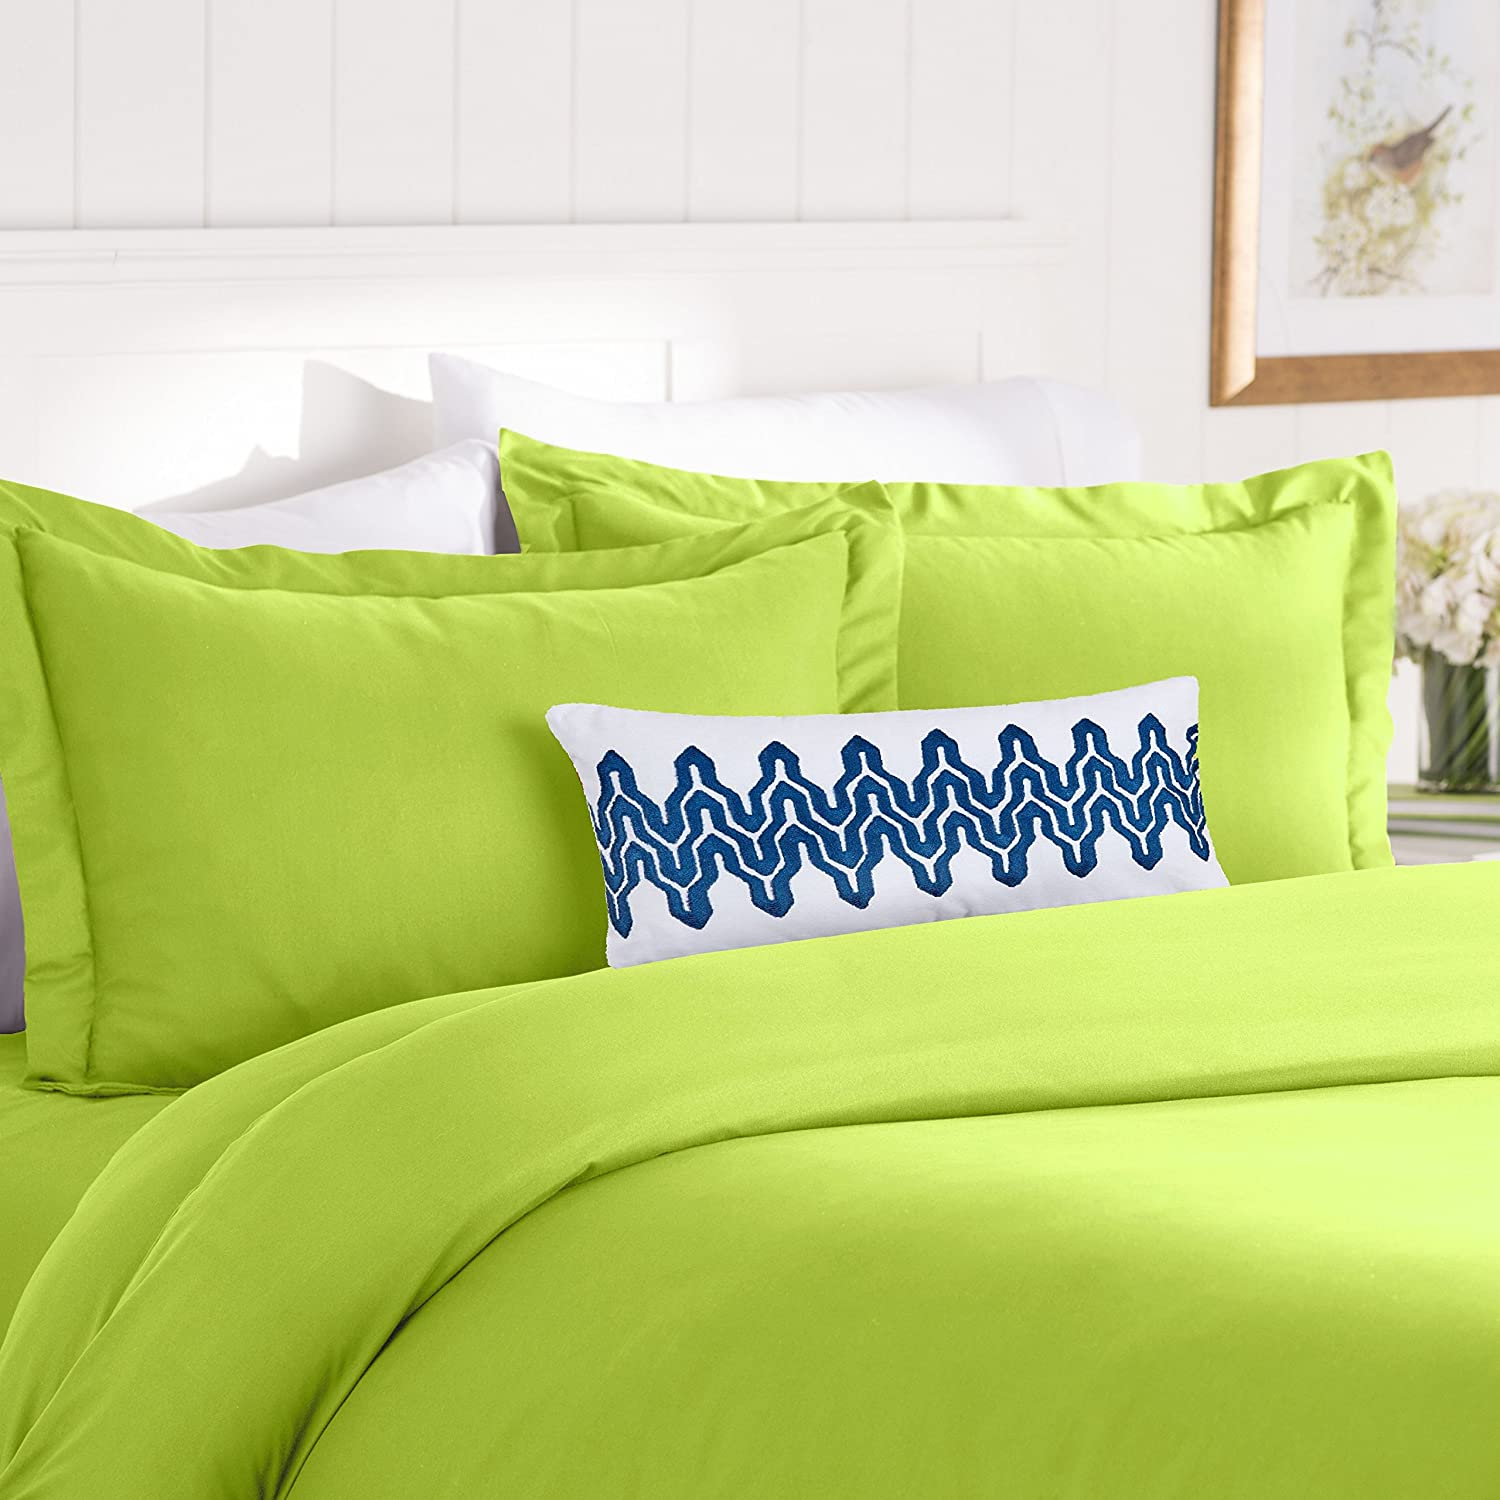 2-Piece Duvet Cover Set, Twin/Twin XL, Lime